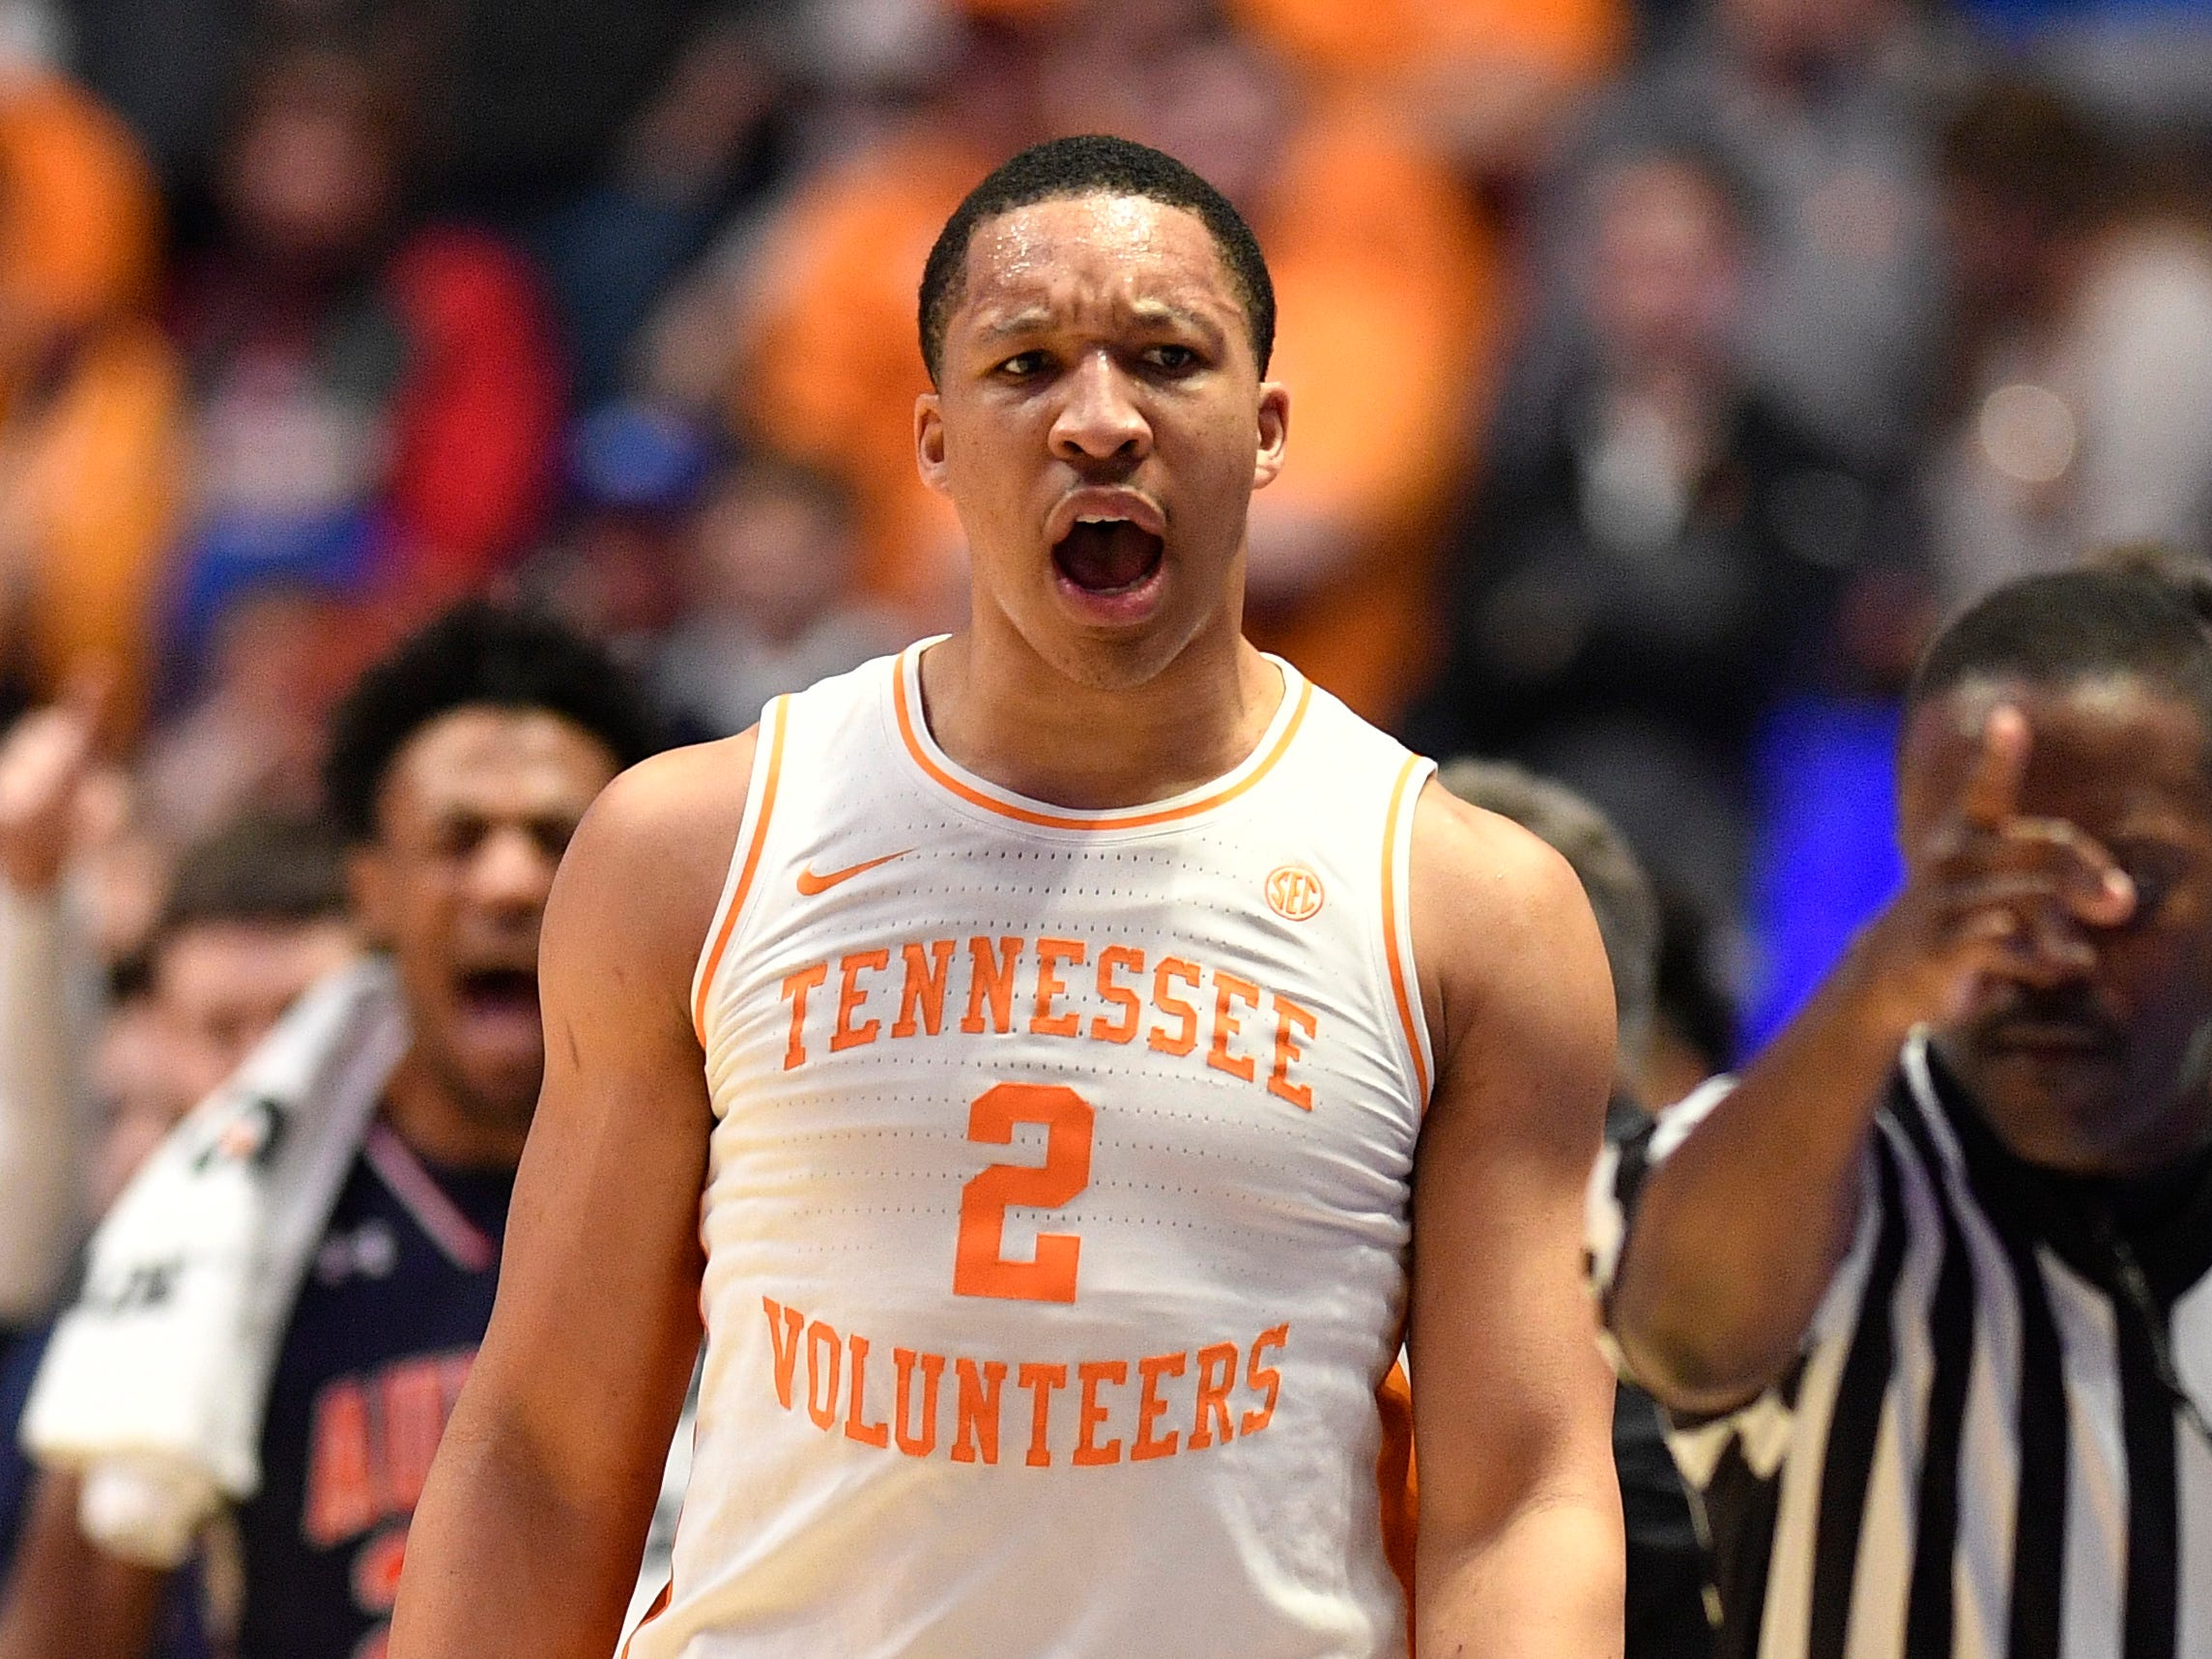 Tennessee forward Grant Williams (2) reacts during the first half of the SEC Men's Basketball Tournament championship game at Bridgestone Arena in Nashville, Tenn., Sunday, March 17, 2019.